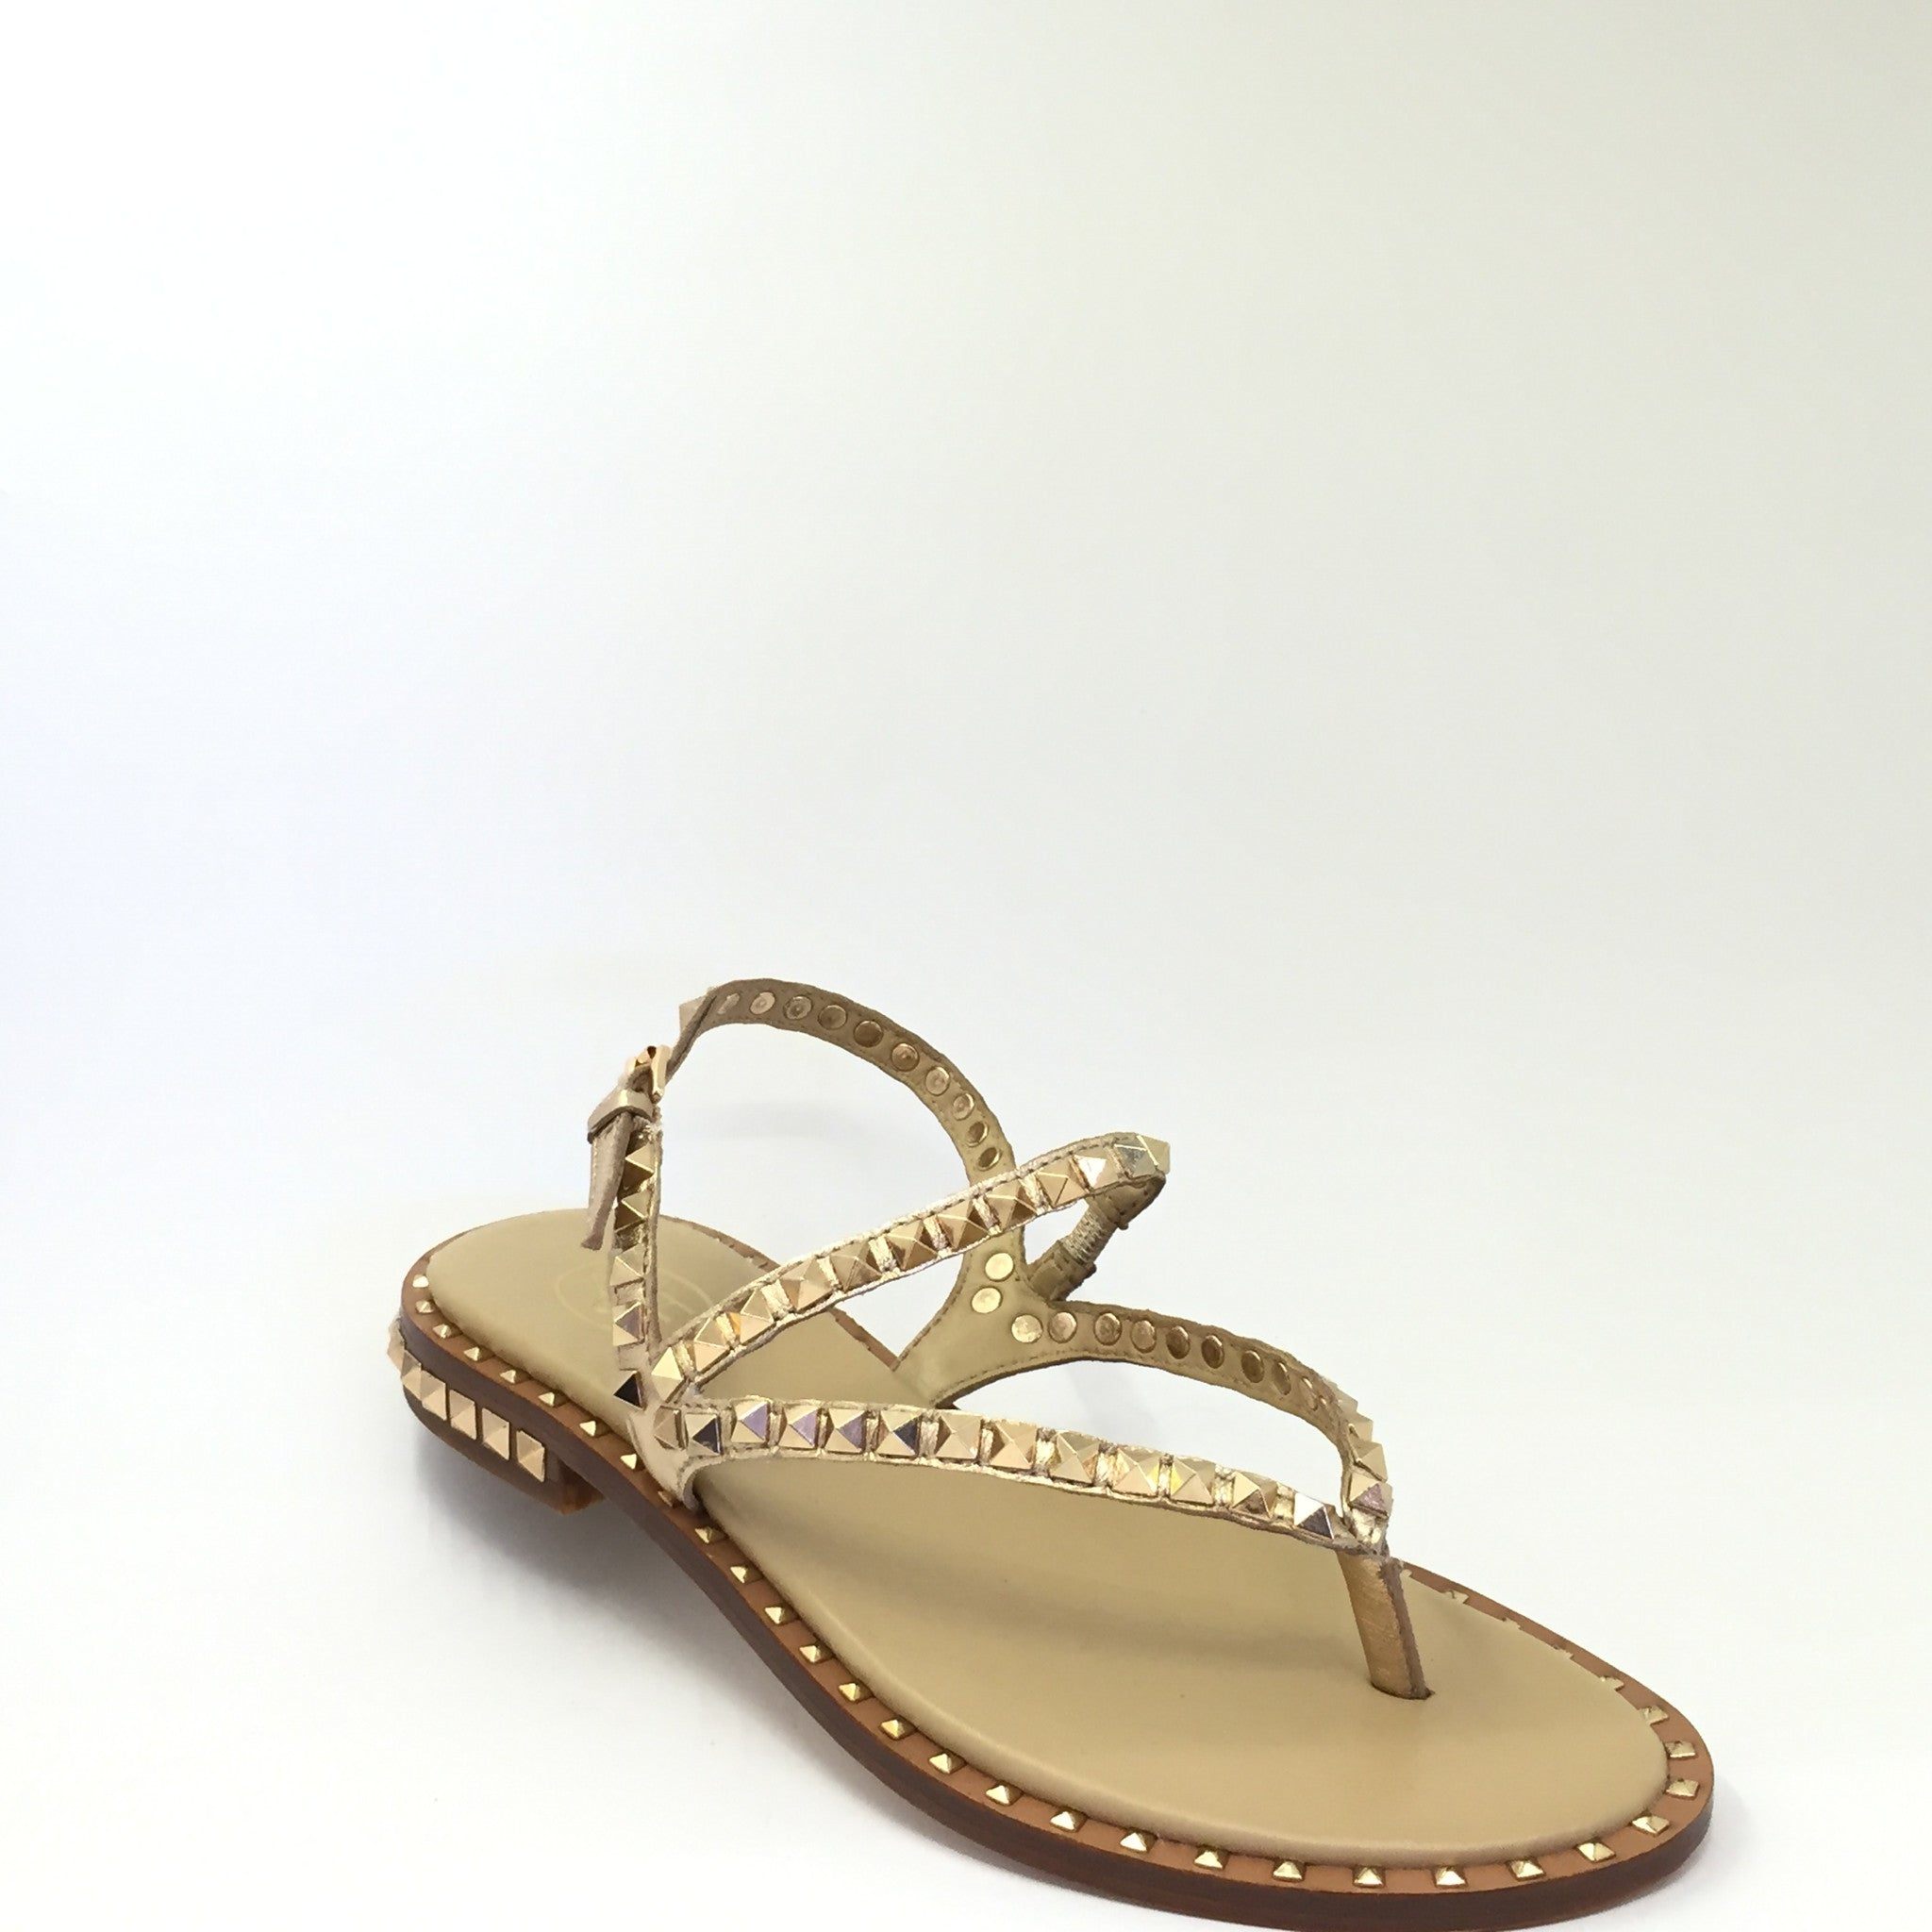 ASH rock stud sandals, summer style inspiration Paired with skinny jeans